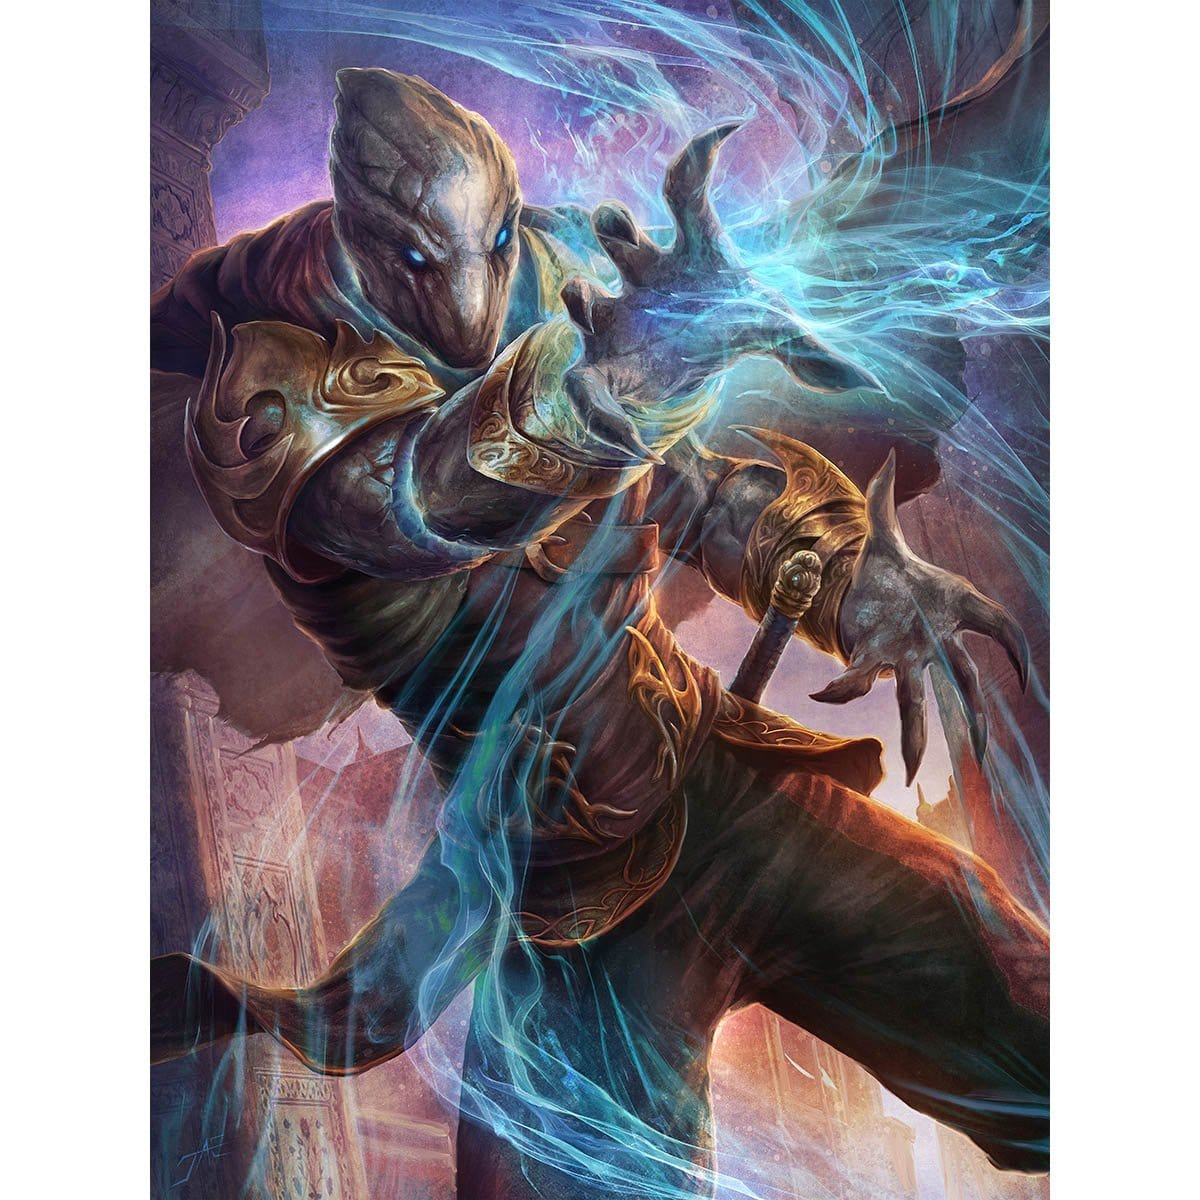 Yahenni's Expertise Print - Print - Original Magic Art - Accessories for Magic the Gathering and other card games